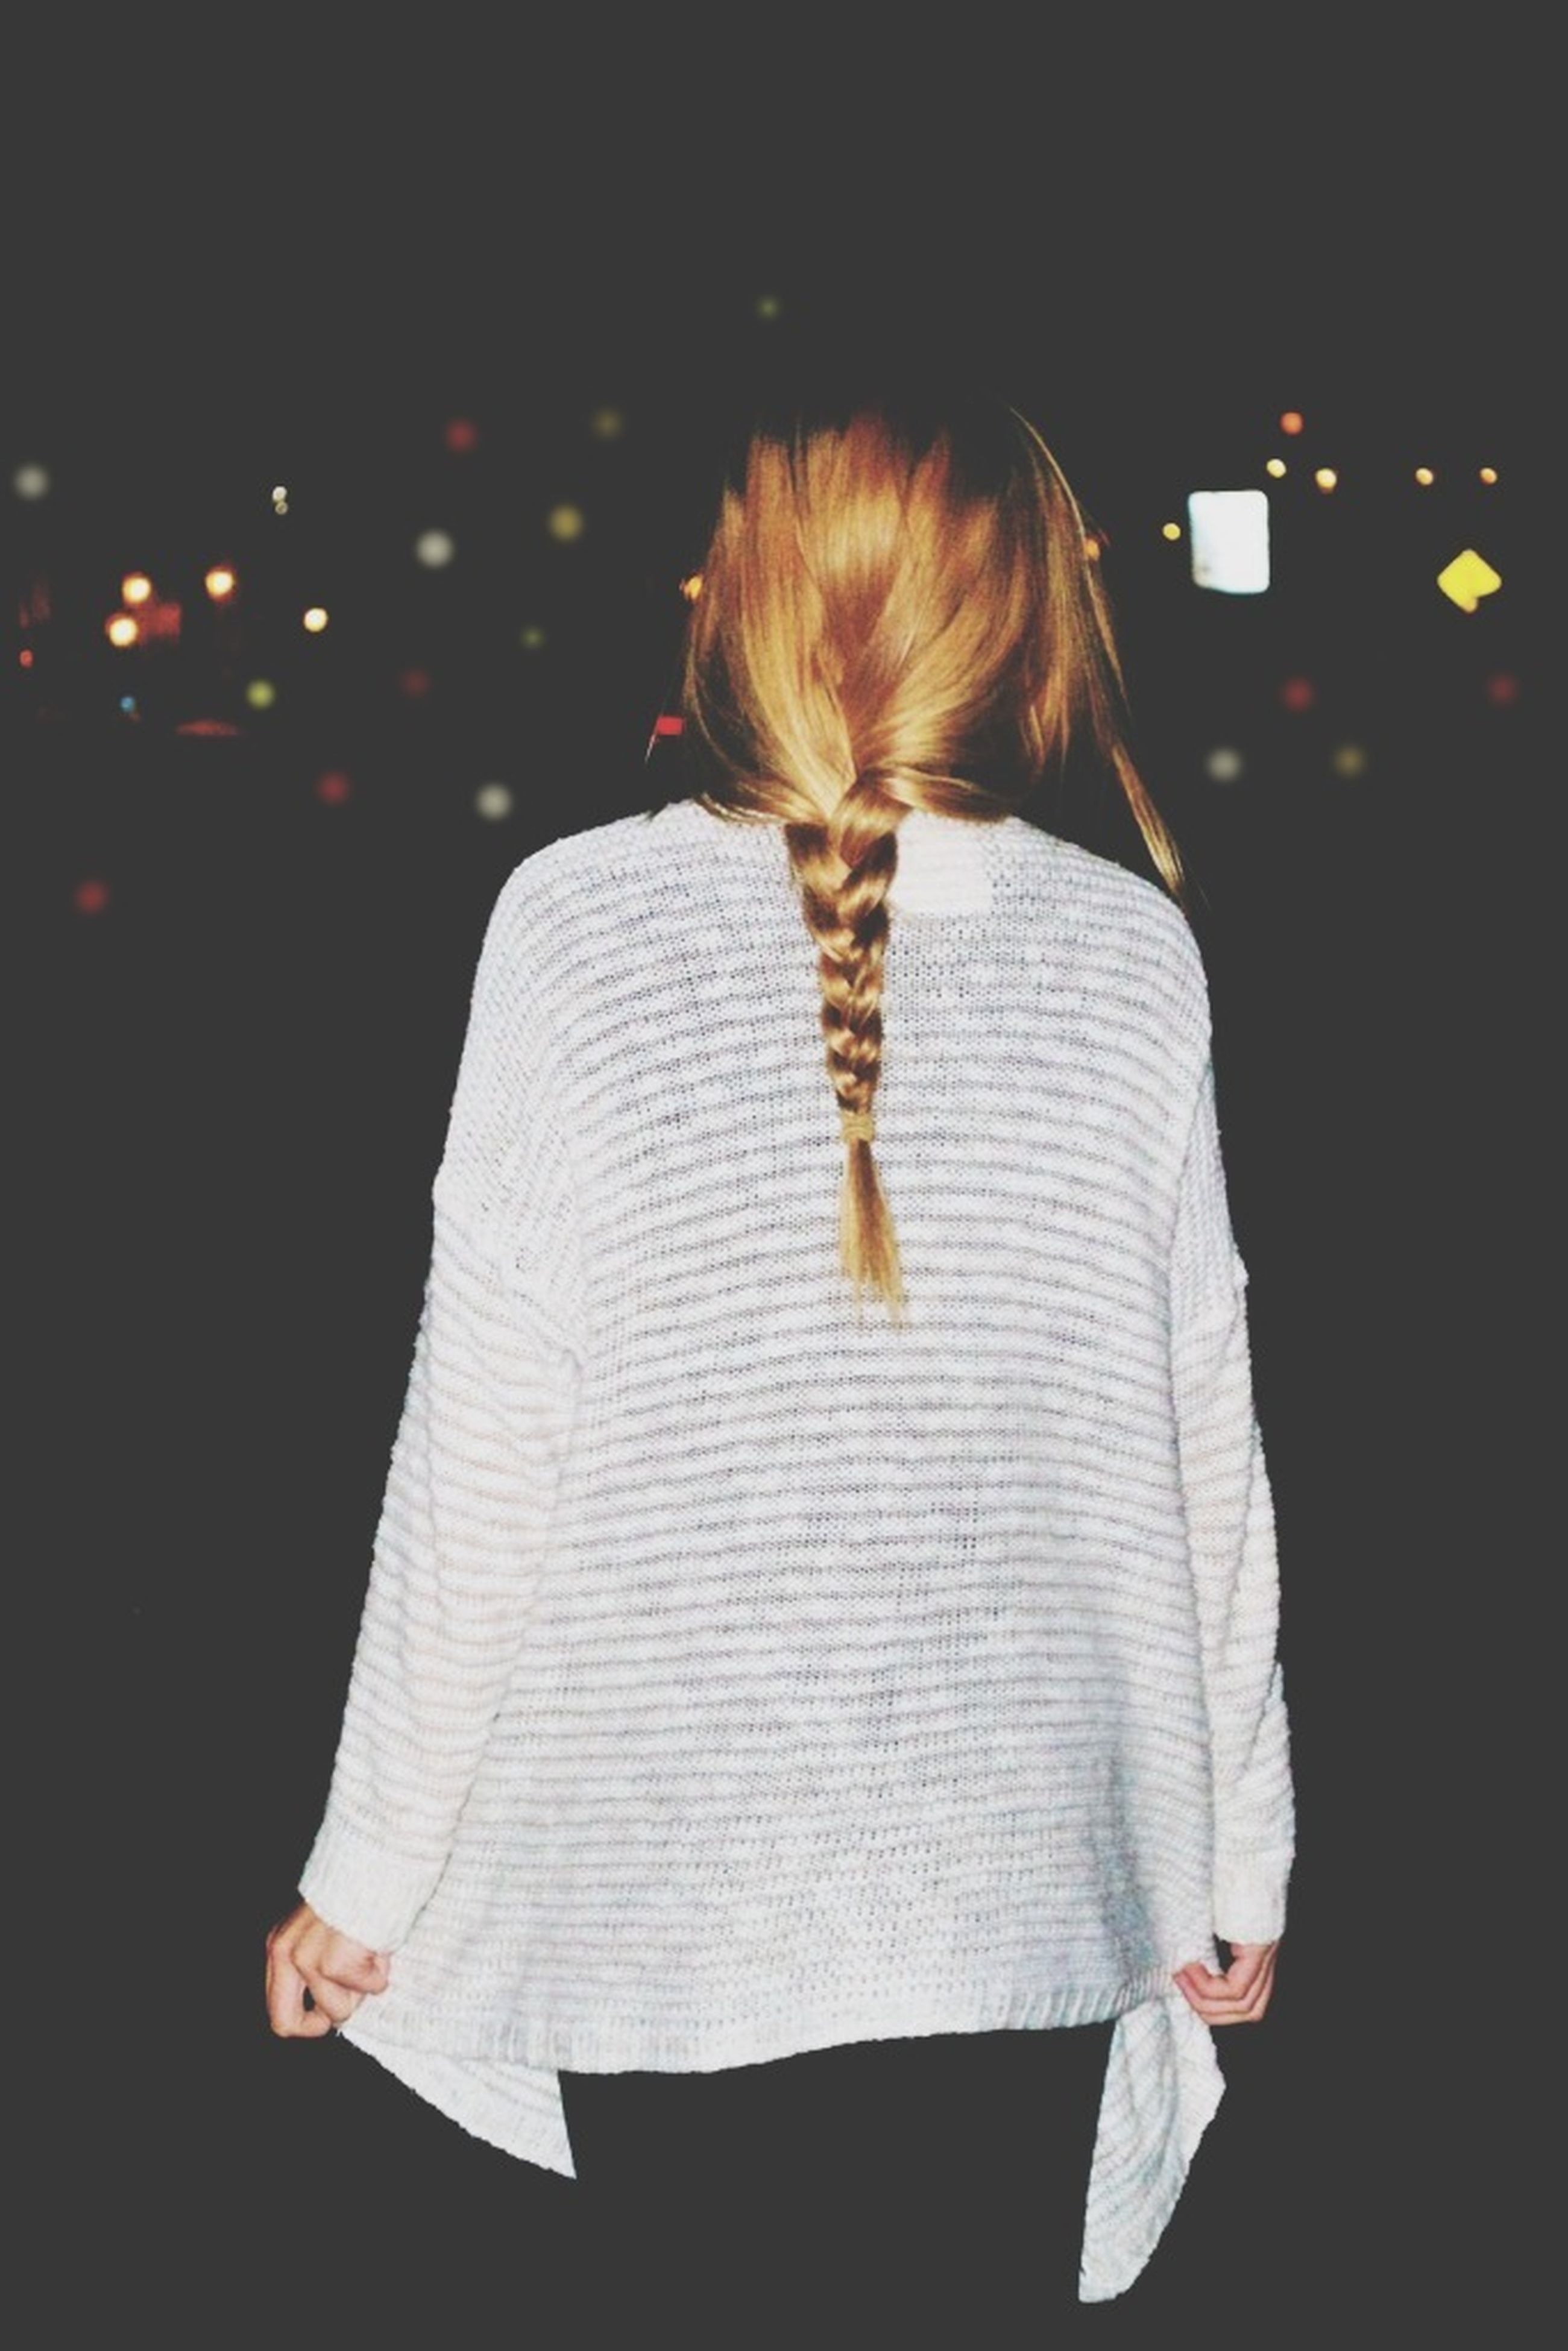 lifestyles, leisure activity, long hair, rear view, casual clothing, standing, night, young women, full length, waist up, young adult, person, three quarter length, front view, side view, holding, indoors